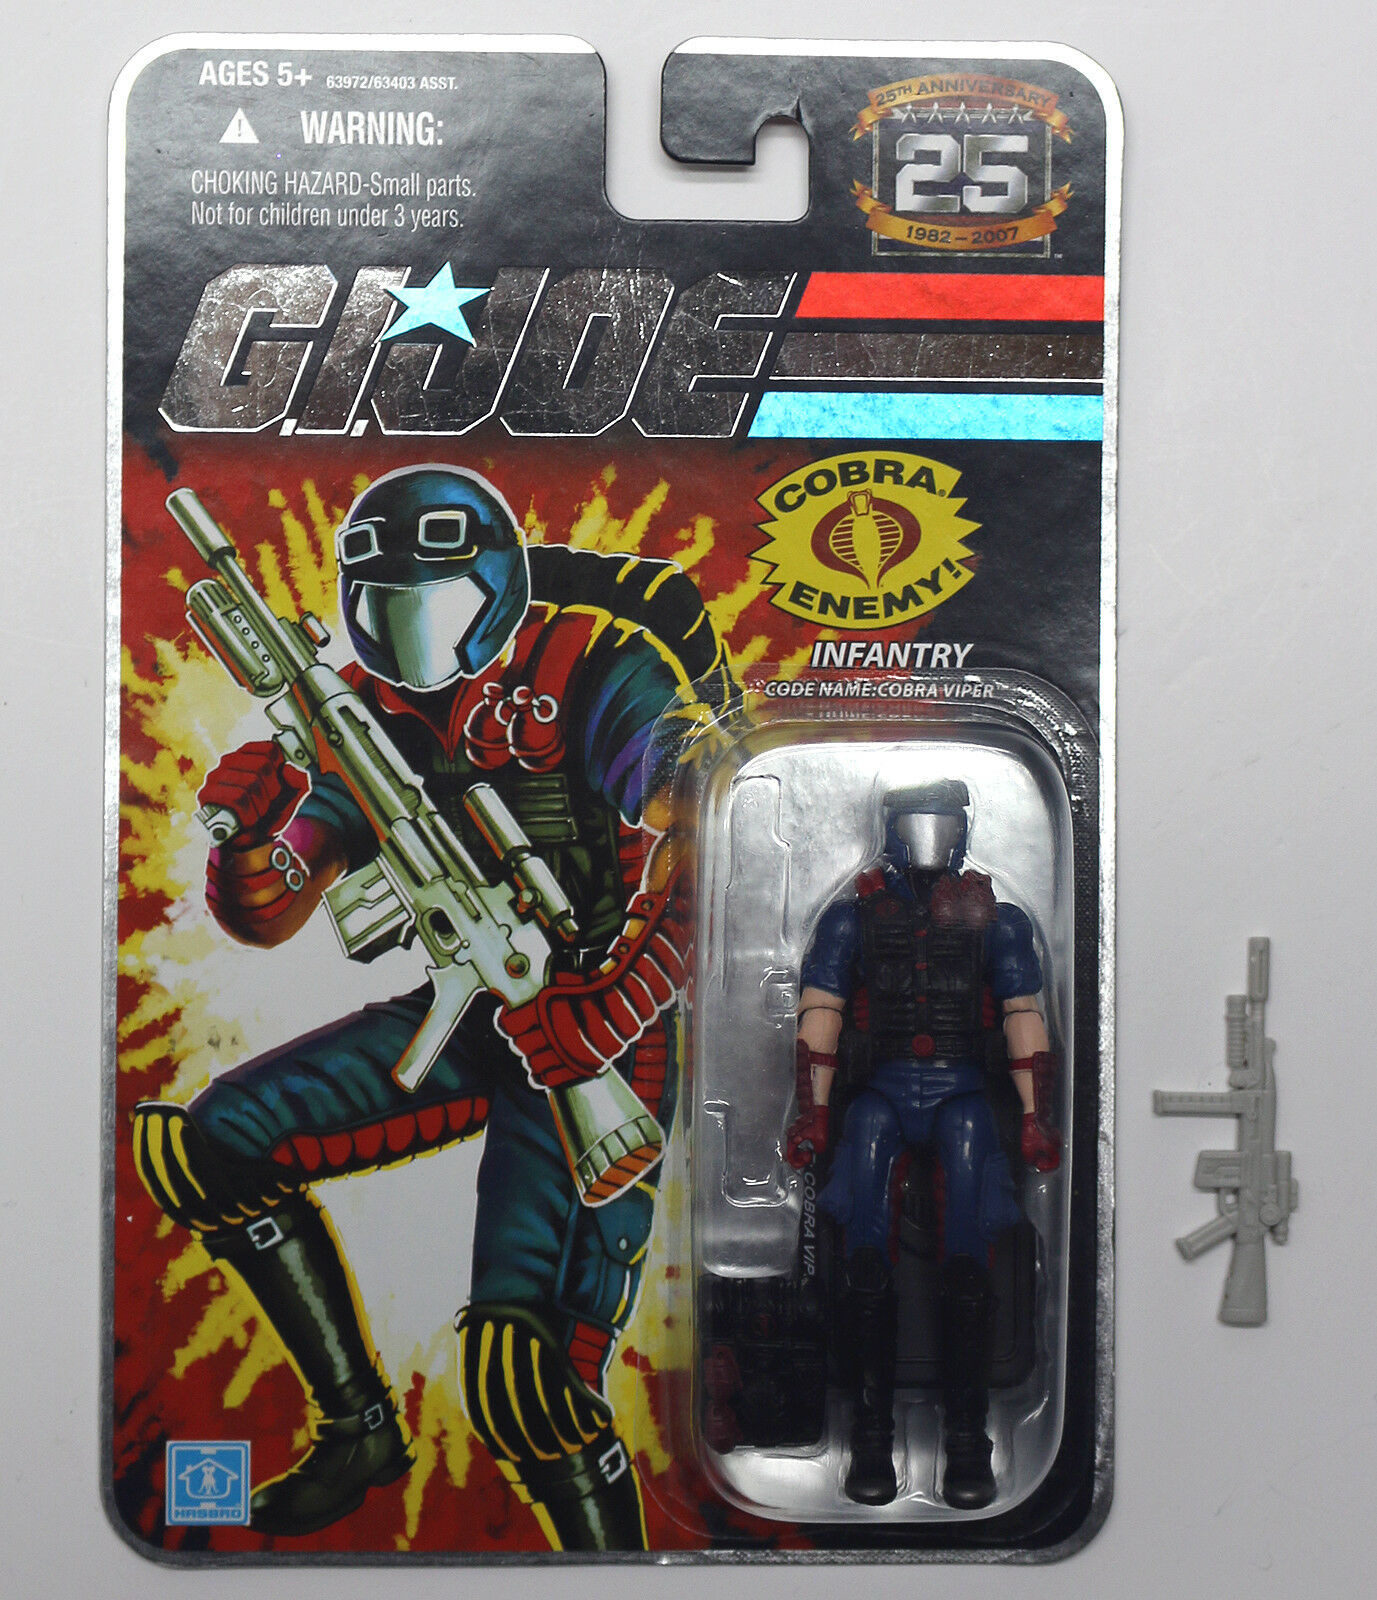 2008 Cobra Viper - MOC - Extremely Rare - Factory Flaw - One of a KIND